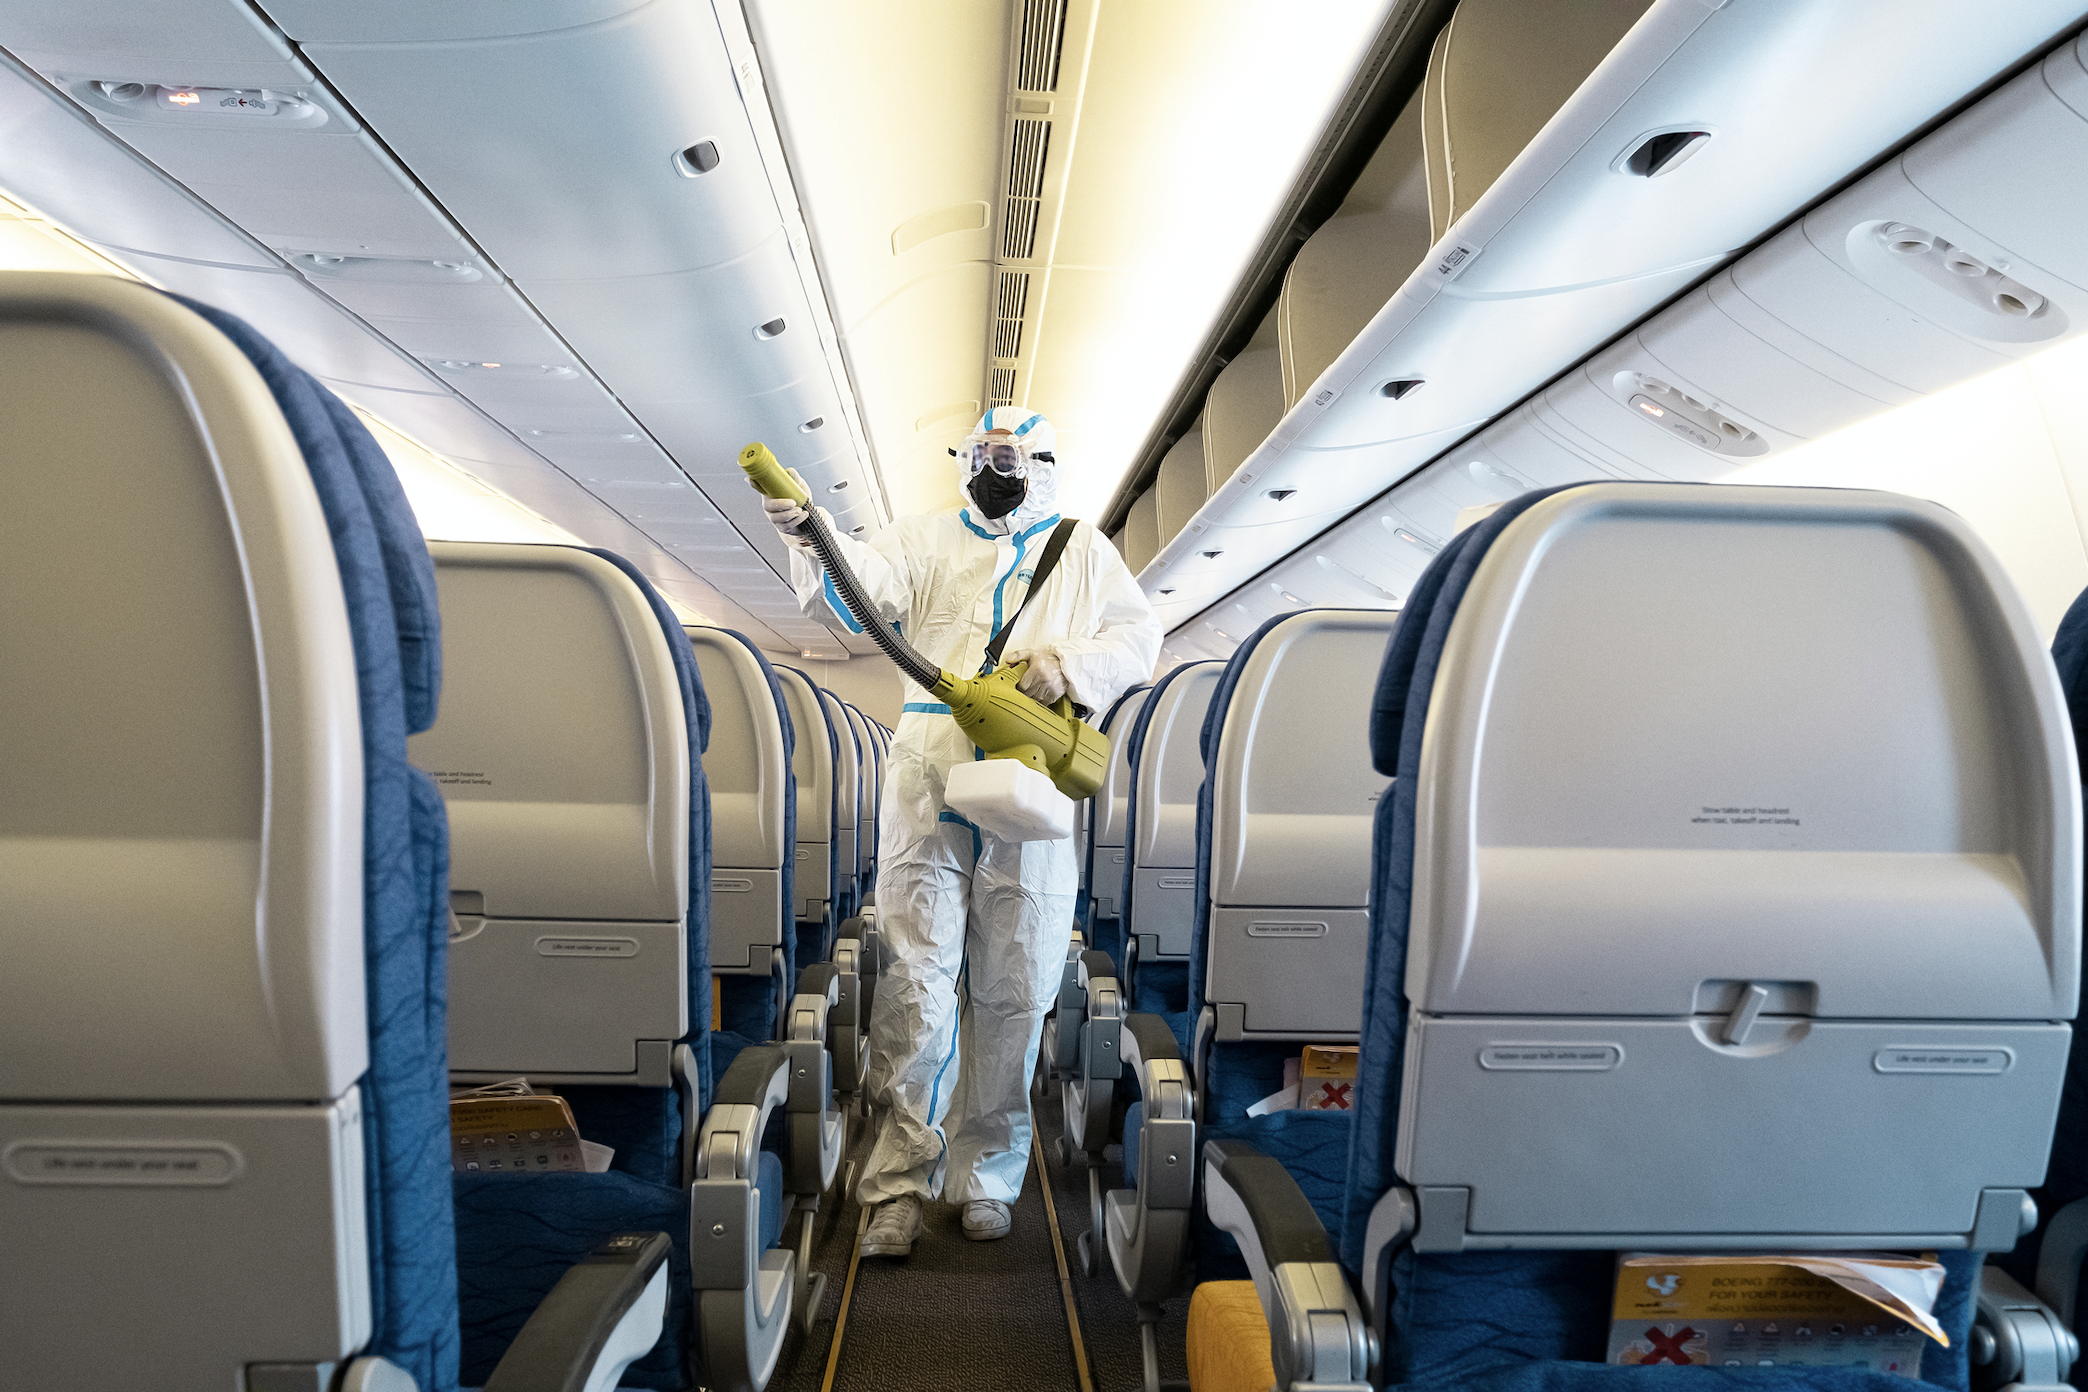 Interior of an airplane being cleaned by a sanitation worker wearing a hazmat suit.